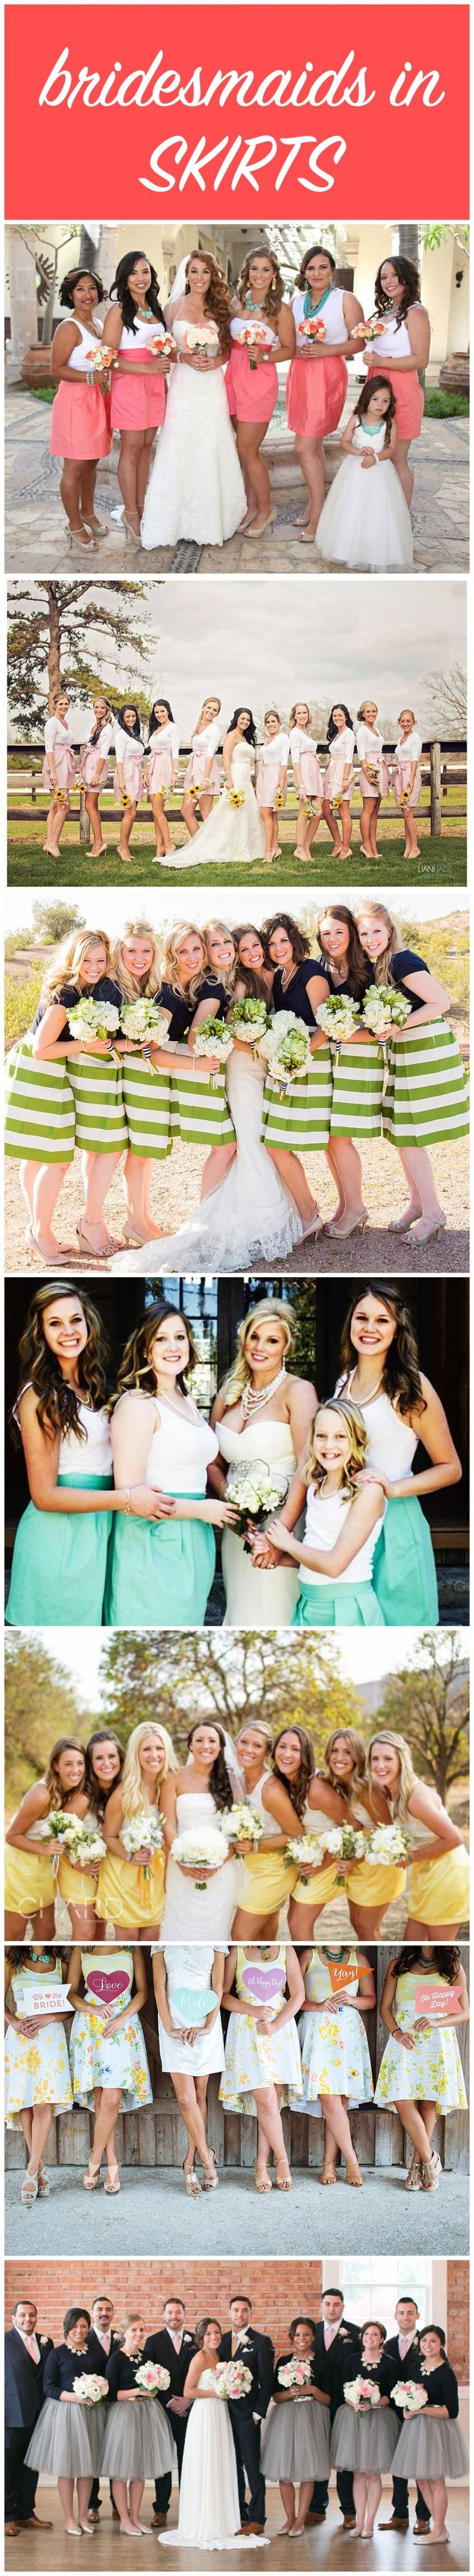 Bridesmaids in Skirts   The Budget Savvy Bride